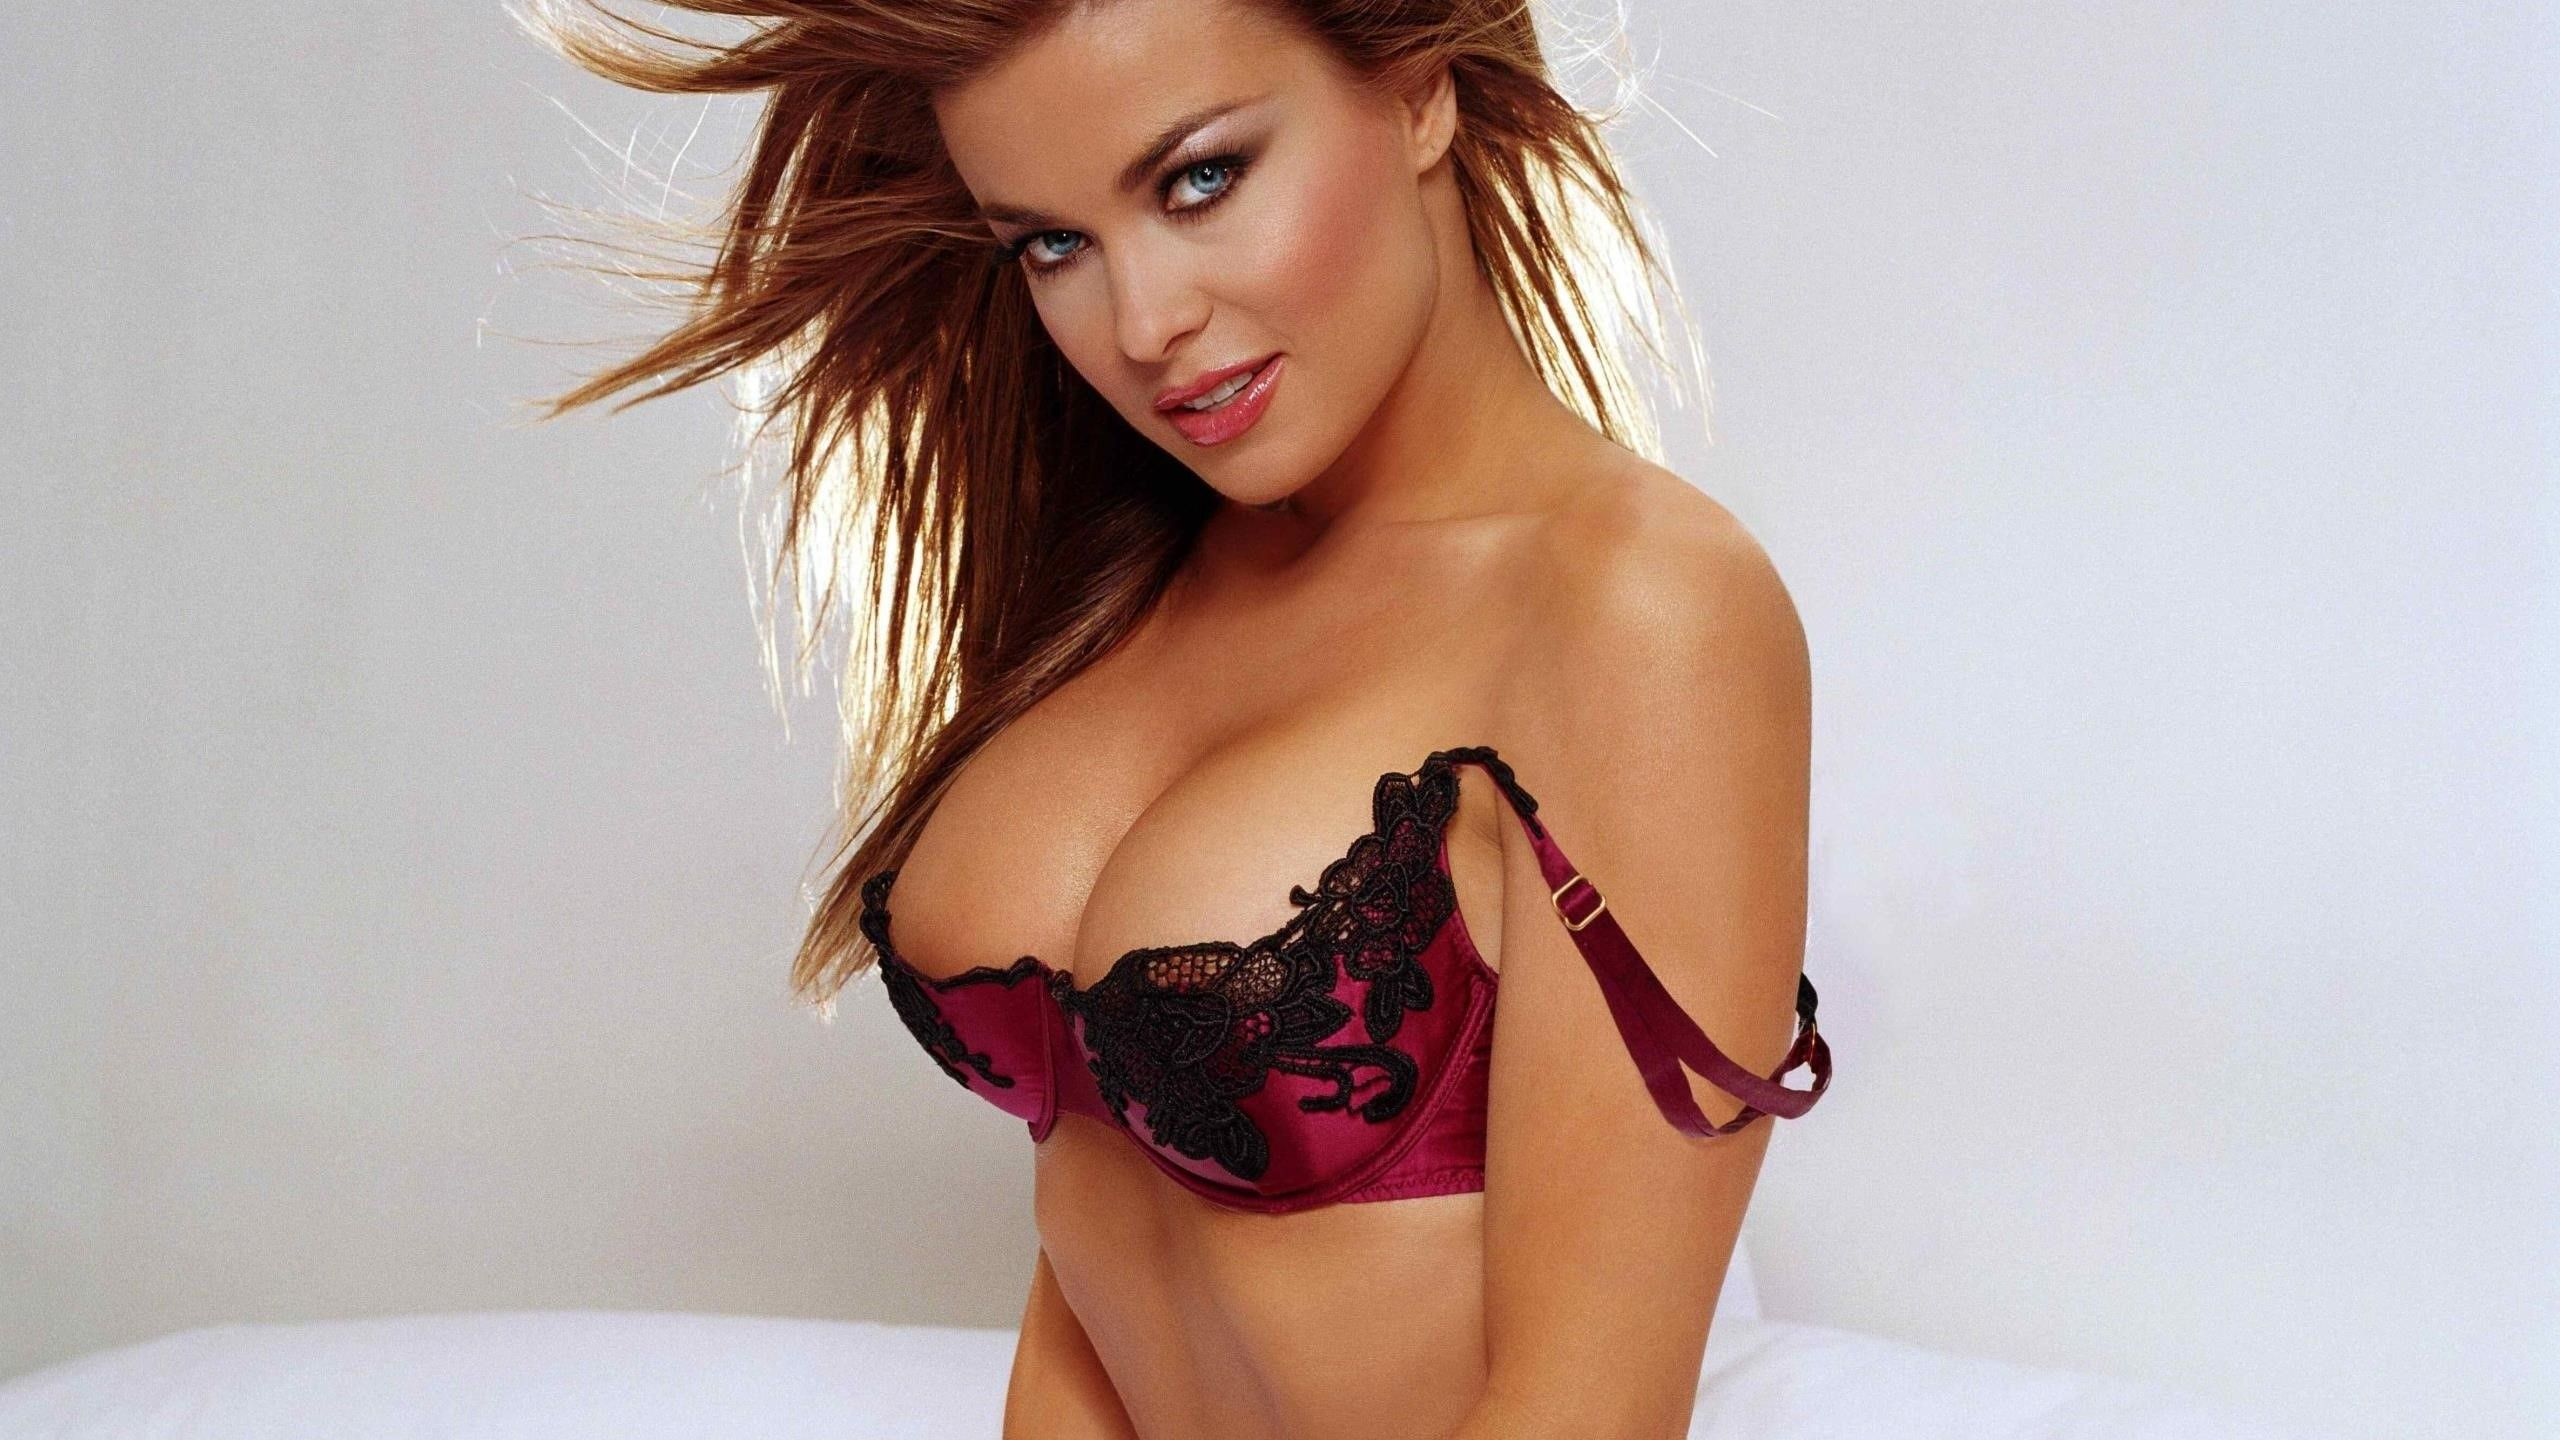 Carmen Electra Hot Wallpapers